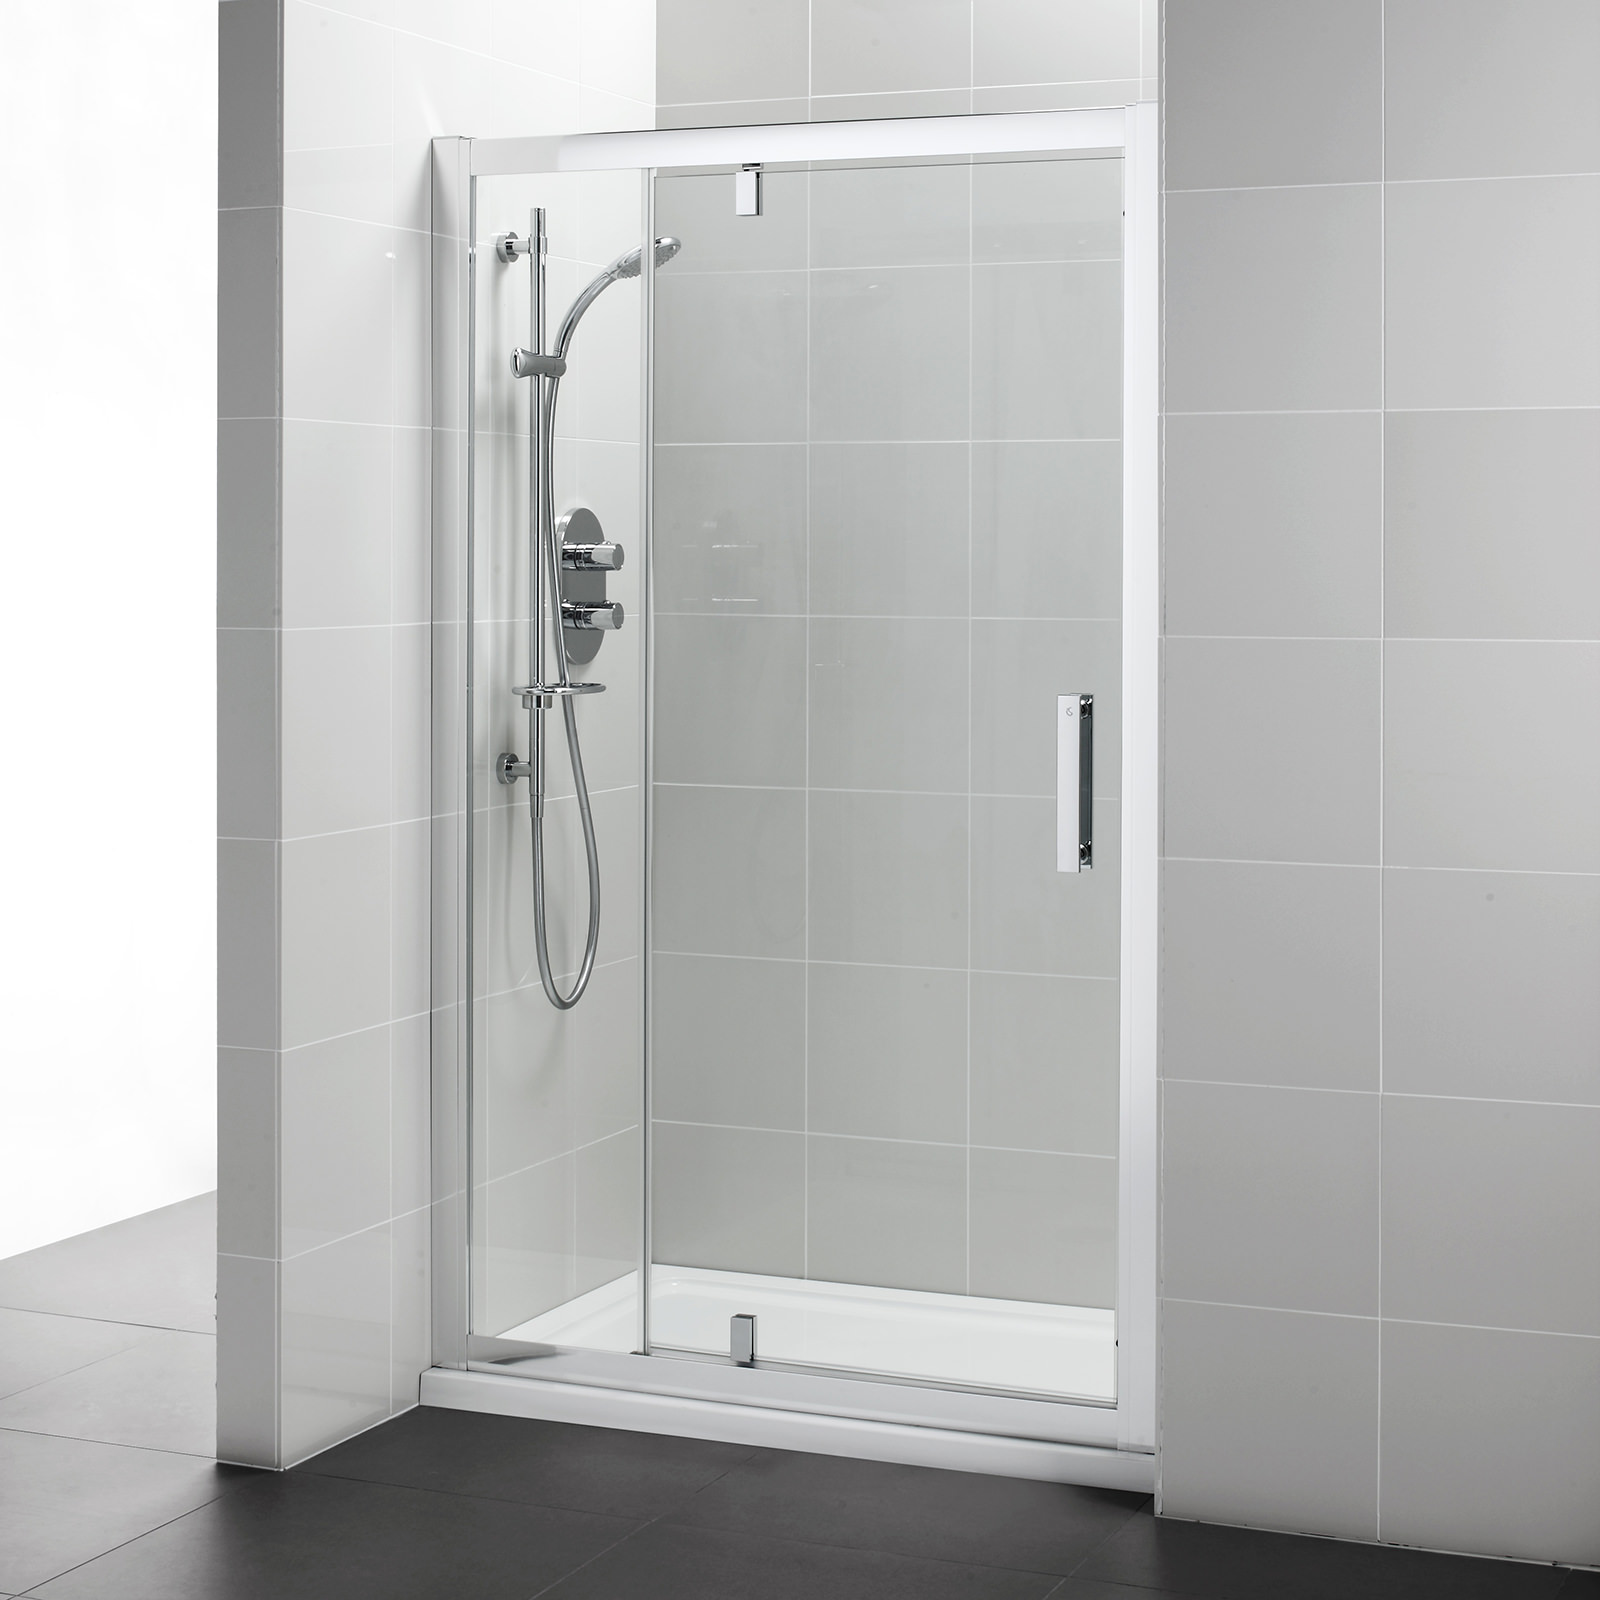 Ideal Standard Synergy 1200mm Pivot Shower Door With In Line Panel